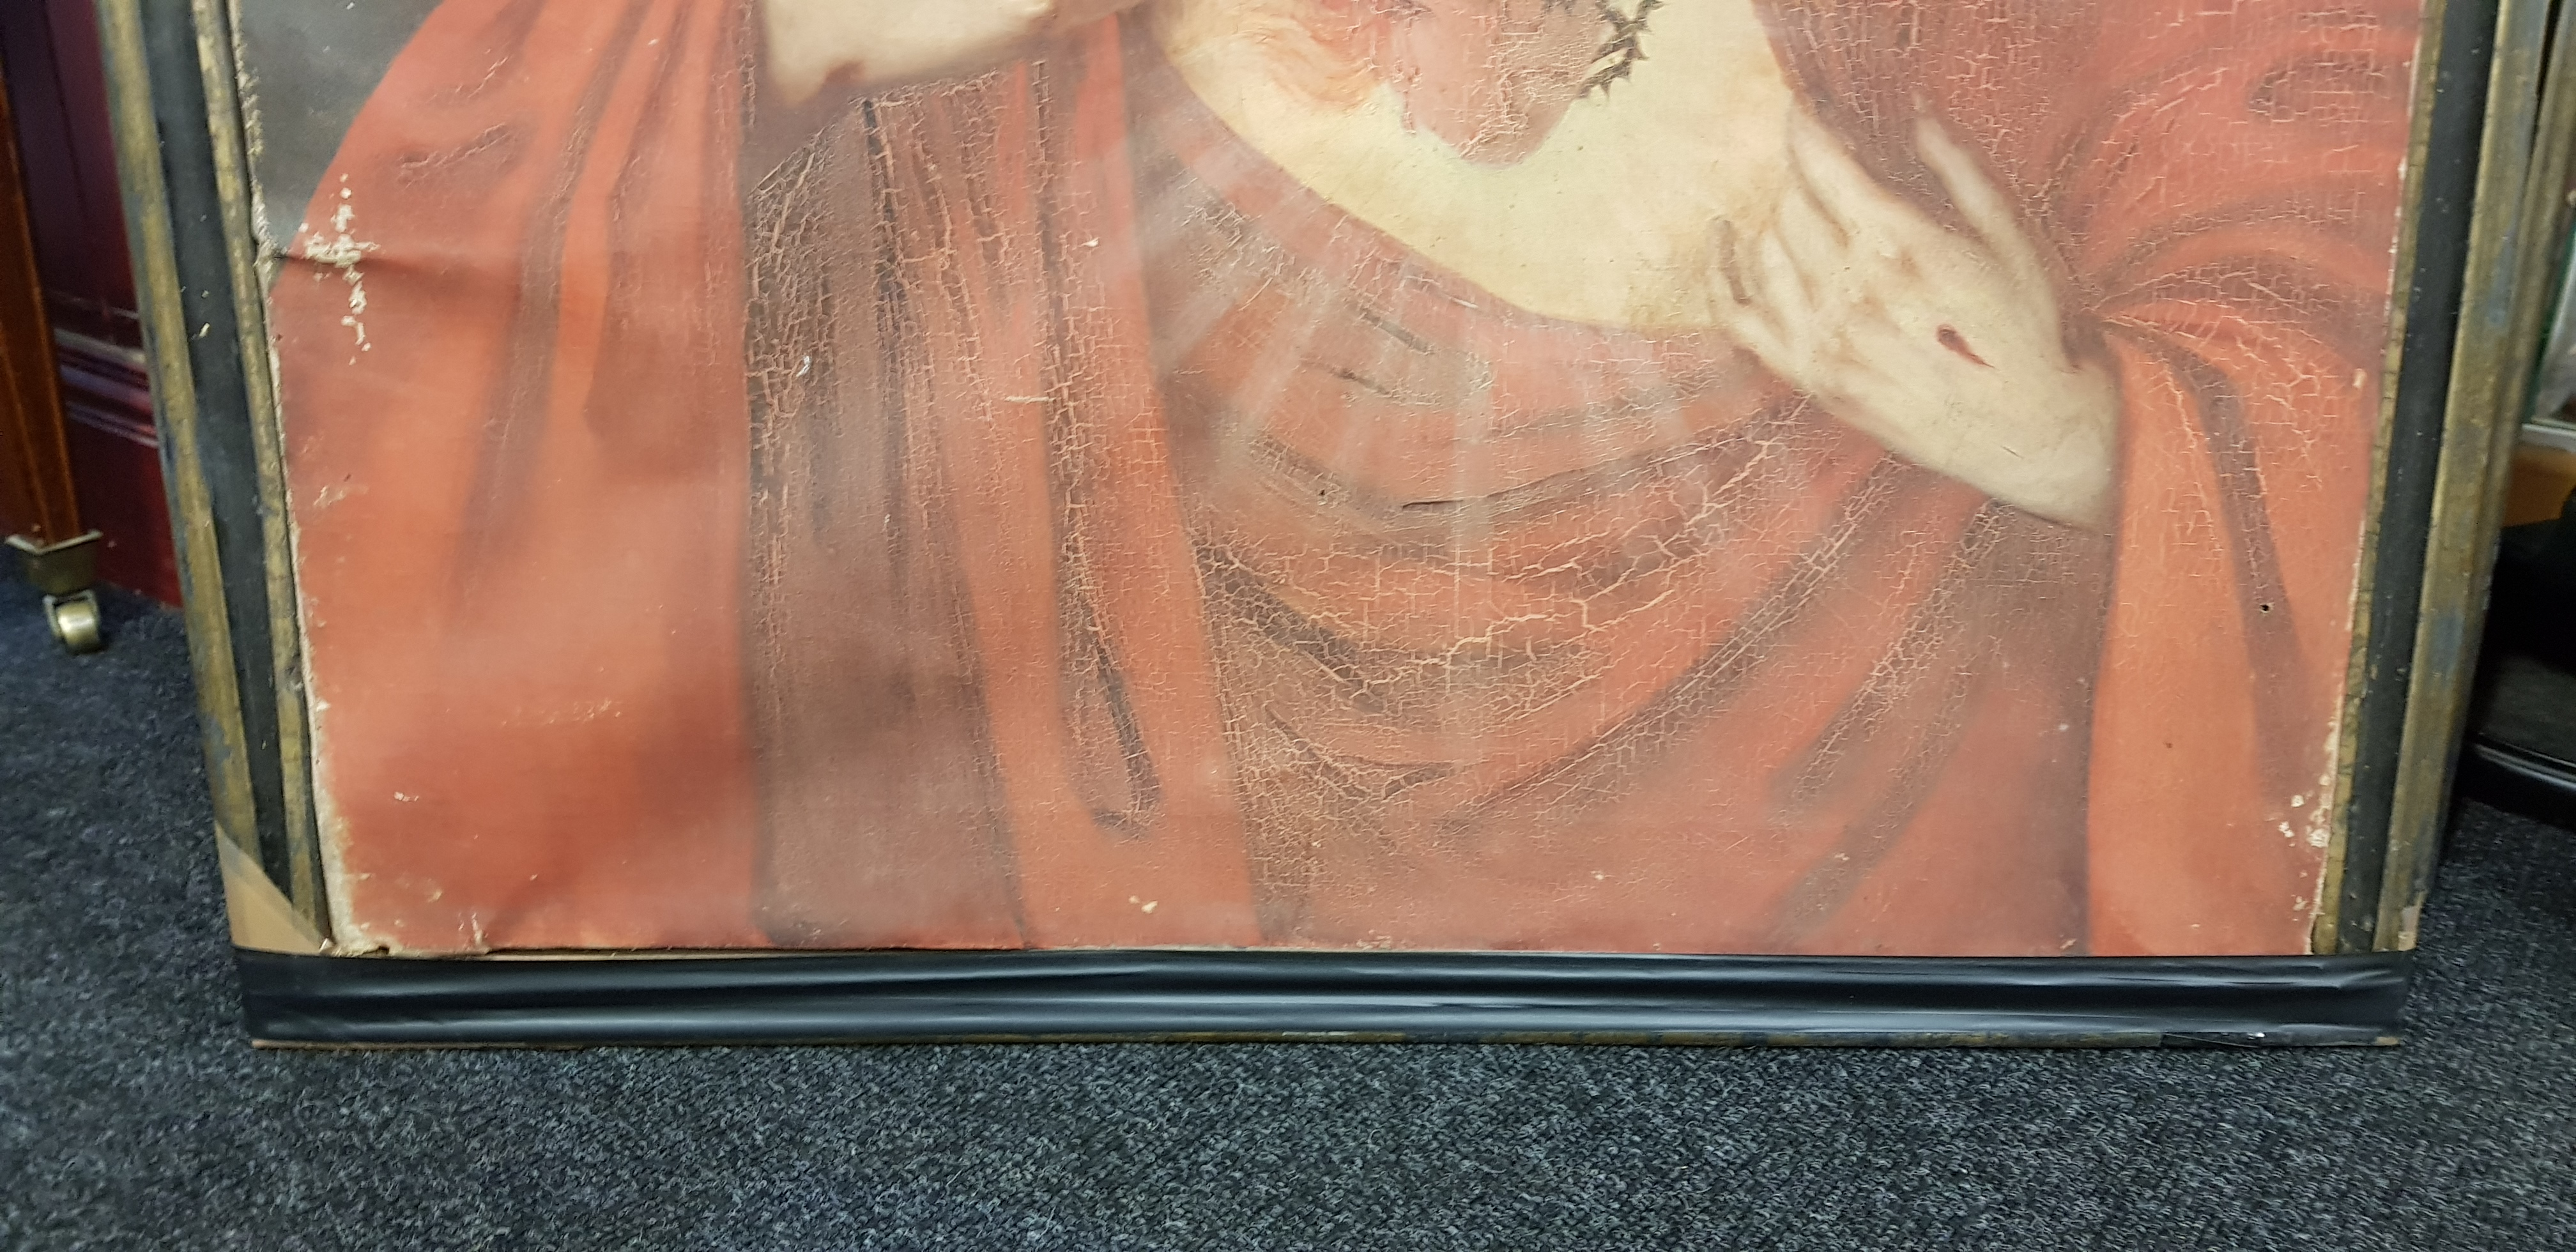 """PAIR OF VERY LARGE OLD MASTER STYLE PAINTINGS OF JESUS AND MARY 37"""" (H) x 29"""" (W) - Image 5 of 5"""